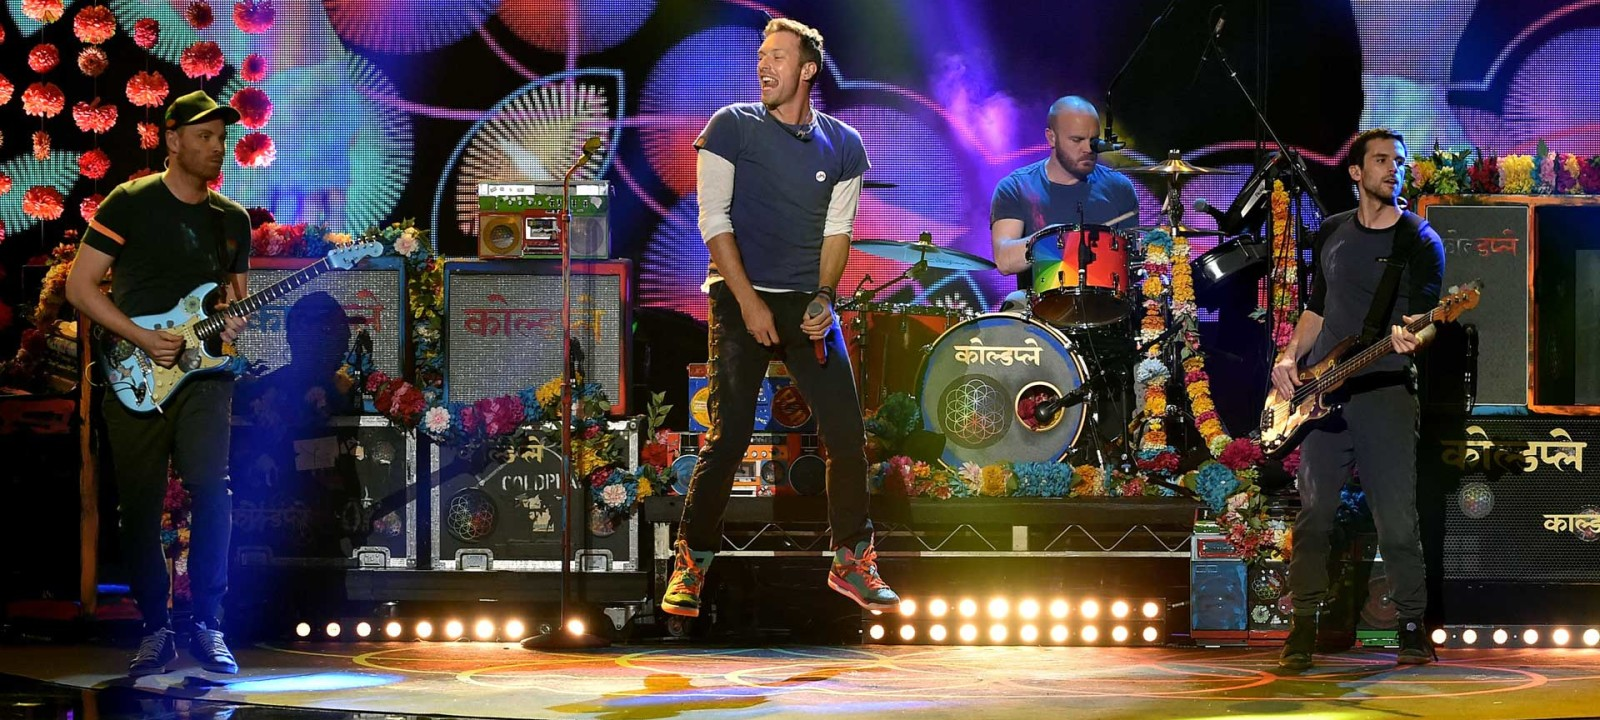 Coldplay in concert (Photo: Kevin Winter / Getty Images)